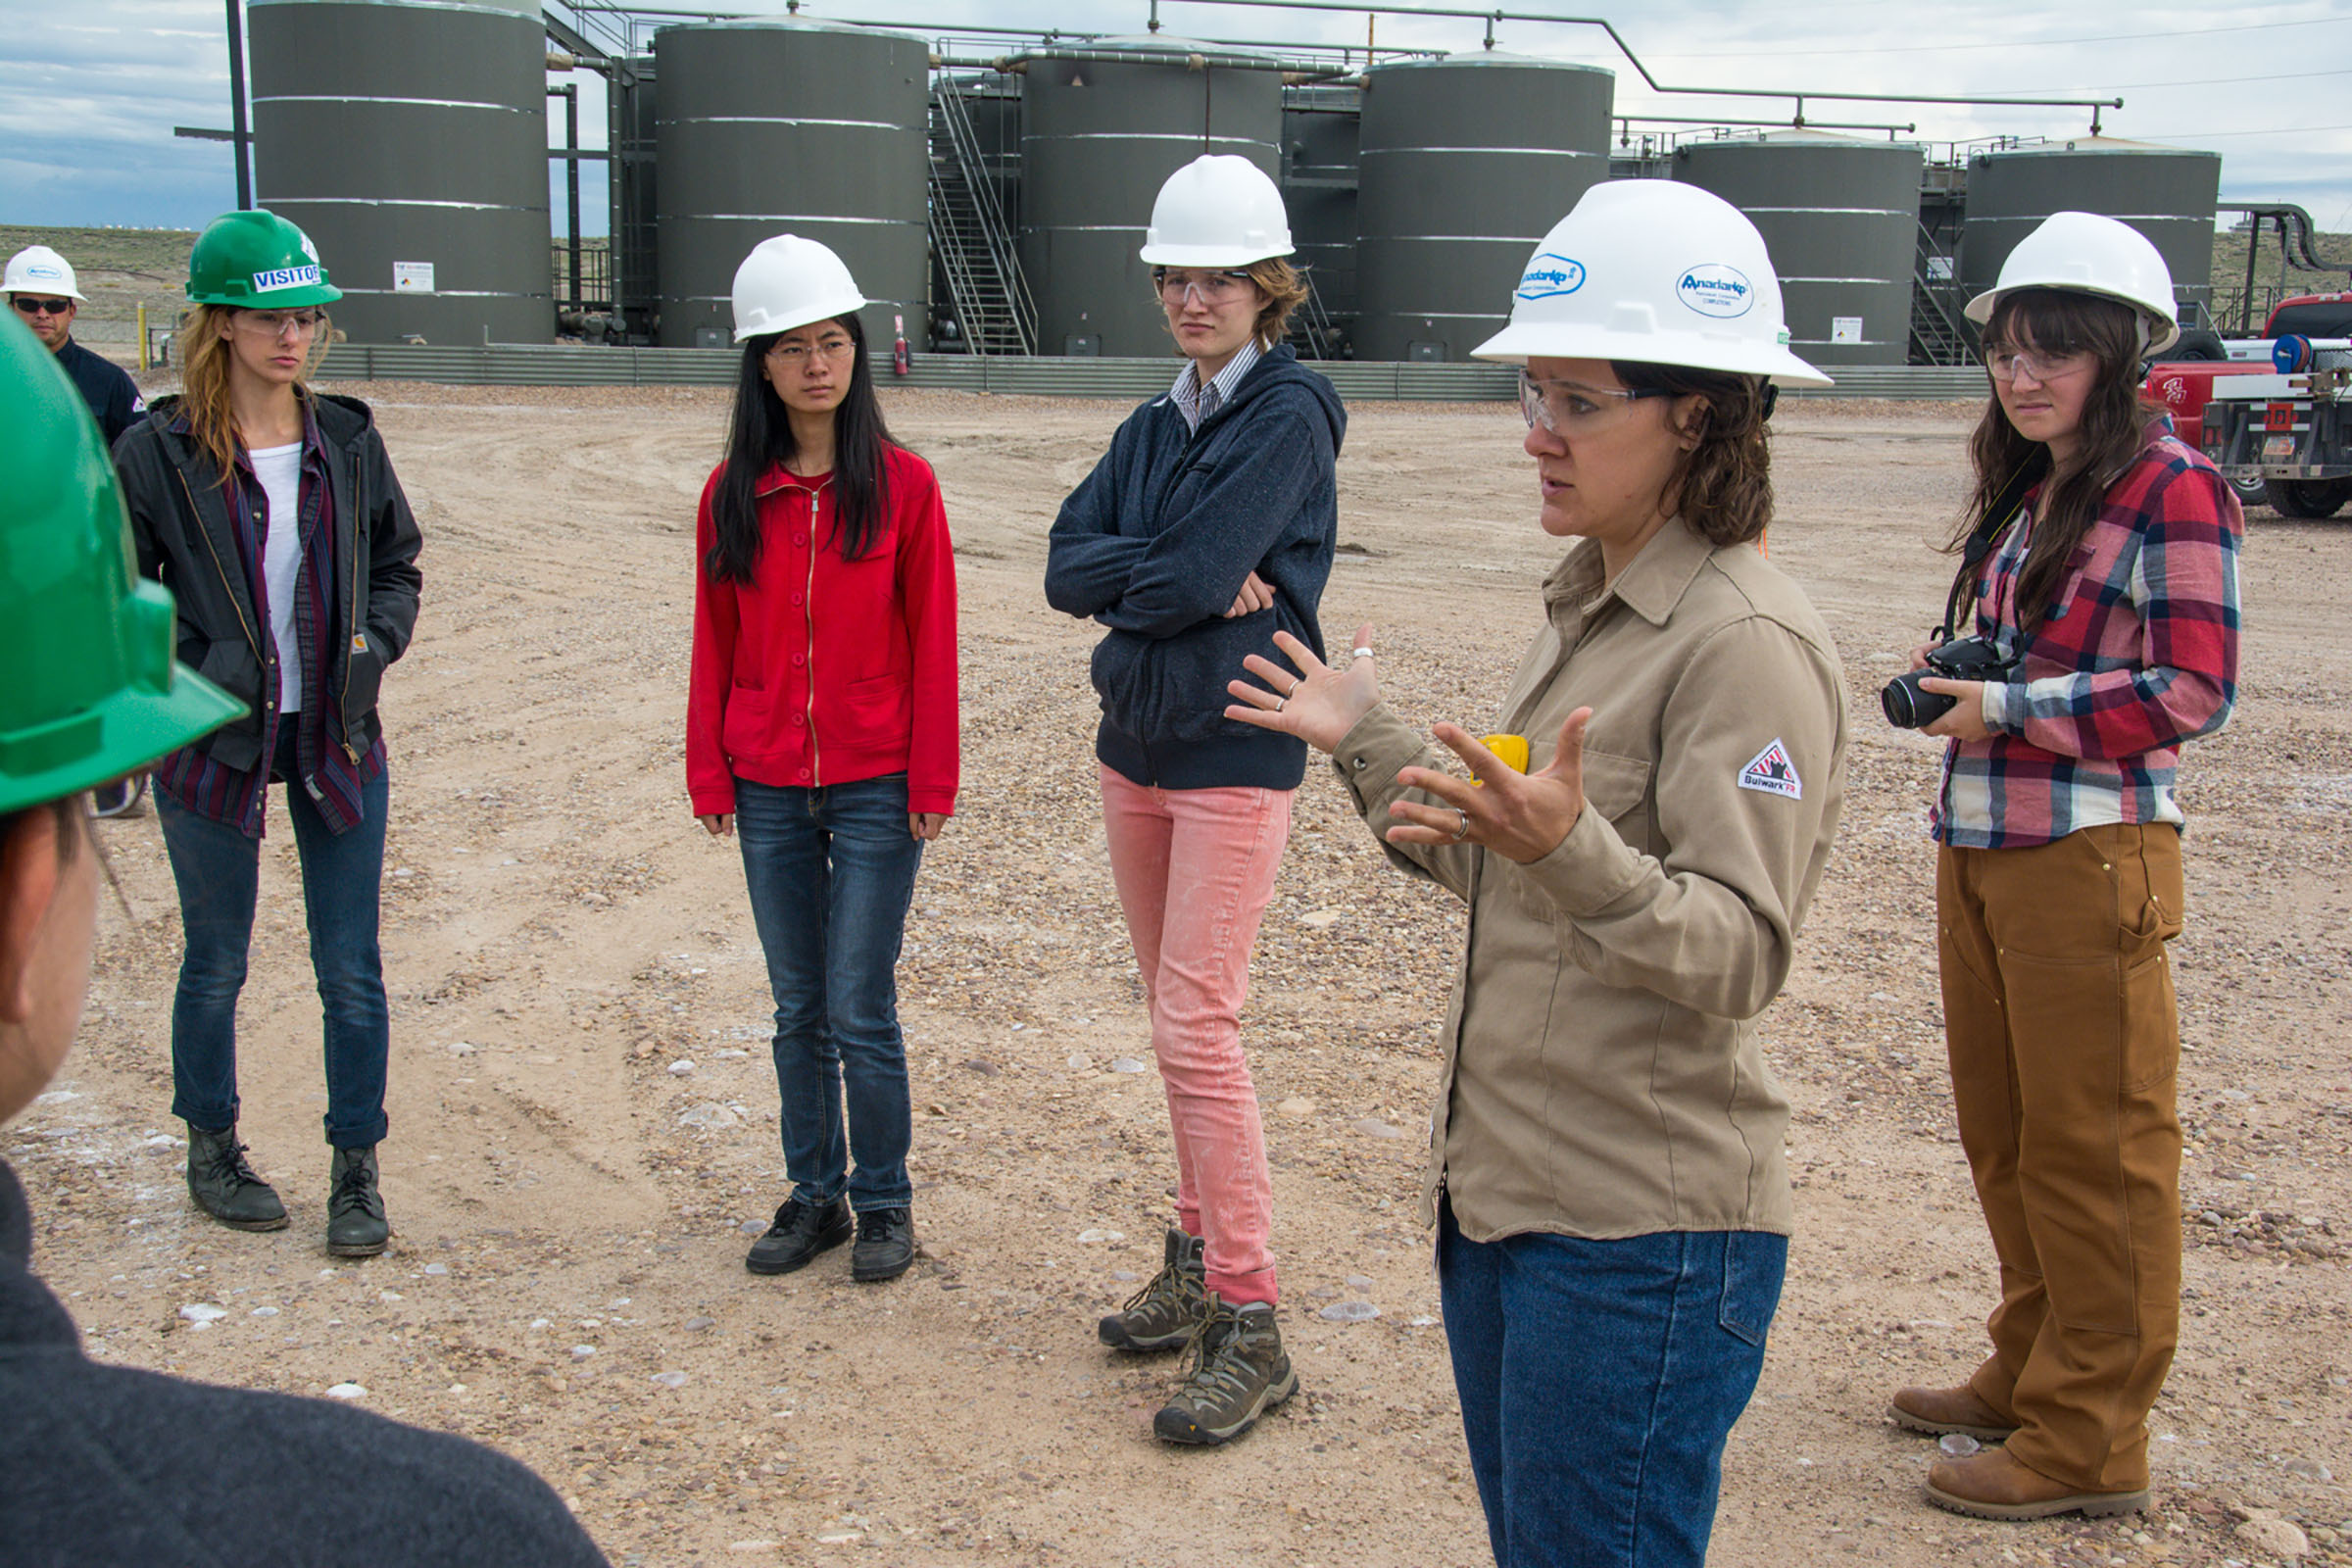 """Students (from left to right: Tyler Cain, Runzhi Dong, Isobel Lingenfelter, Christianna Johnson) from the """"Air Quality, Health and Society"""" Honors Praxis Lab receive a tour of the Anadarko natural gas fields outside of Vernal, Utah during their fall 2014 field trip."""